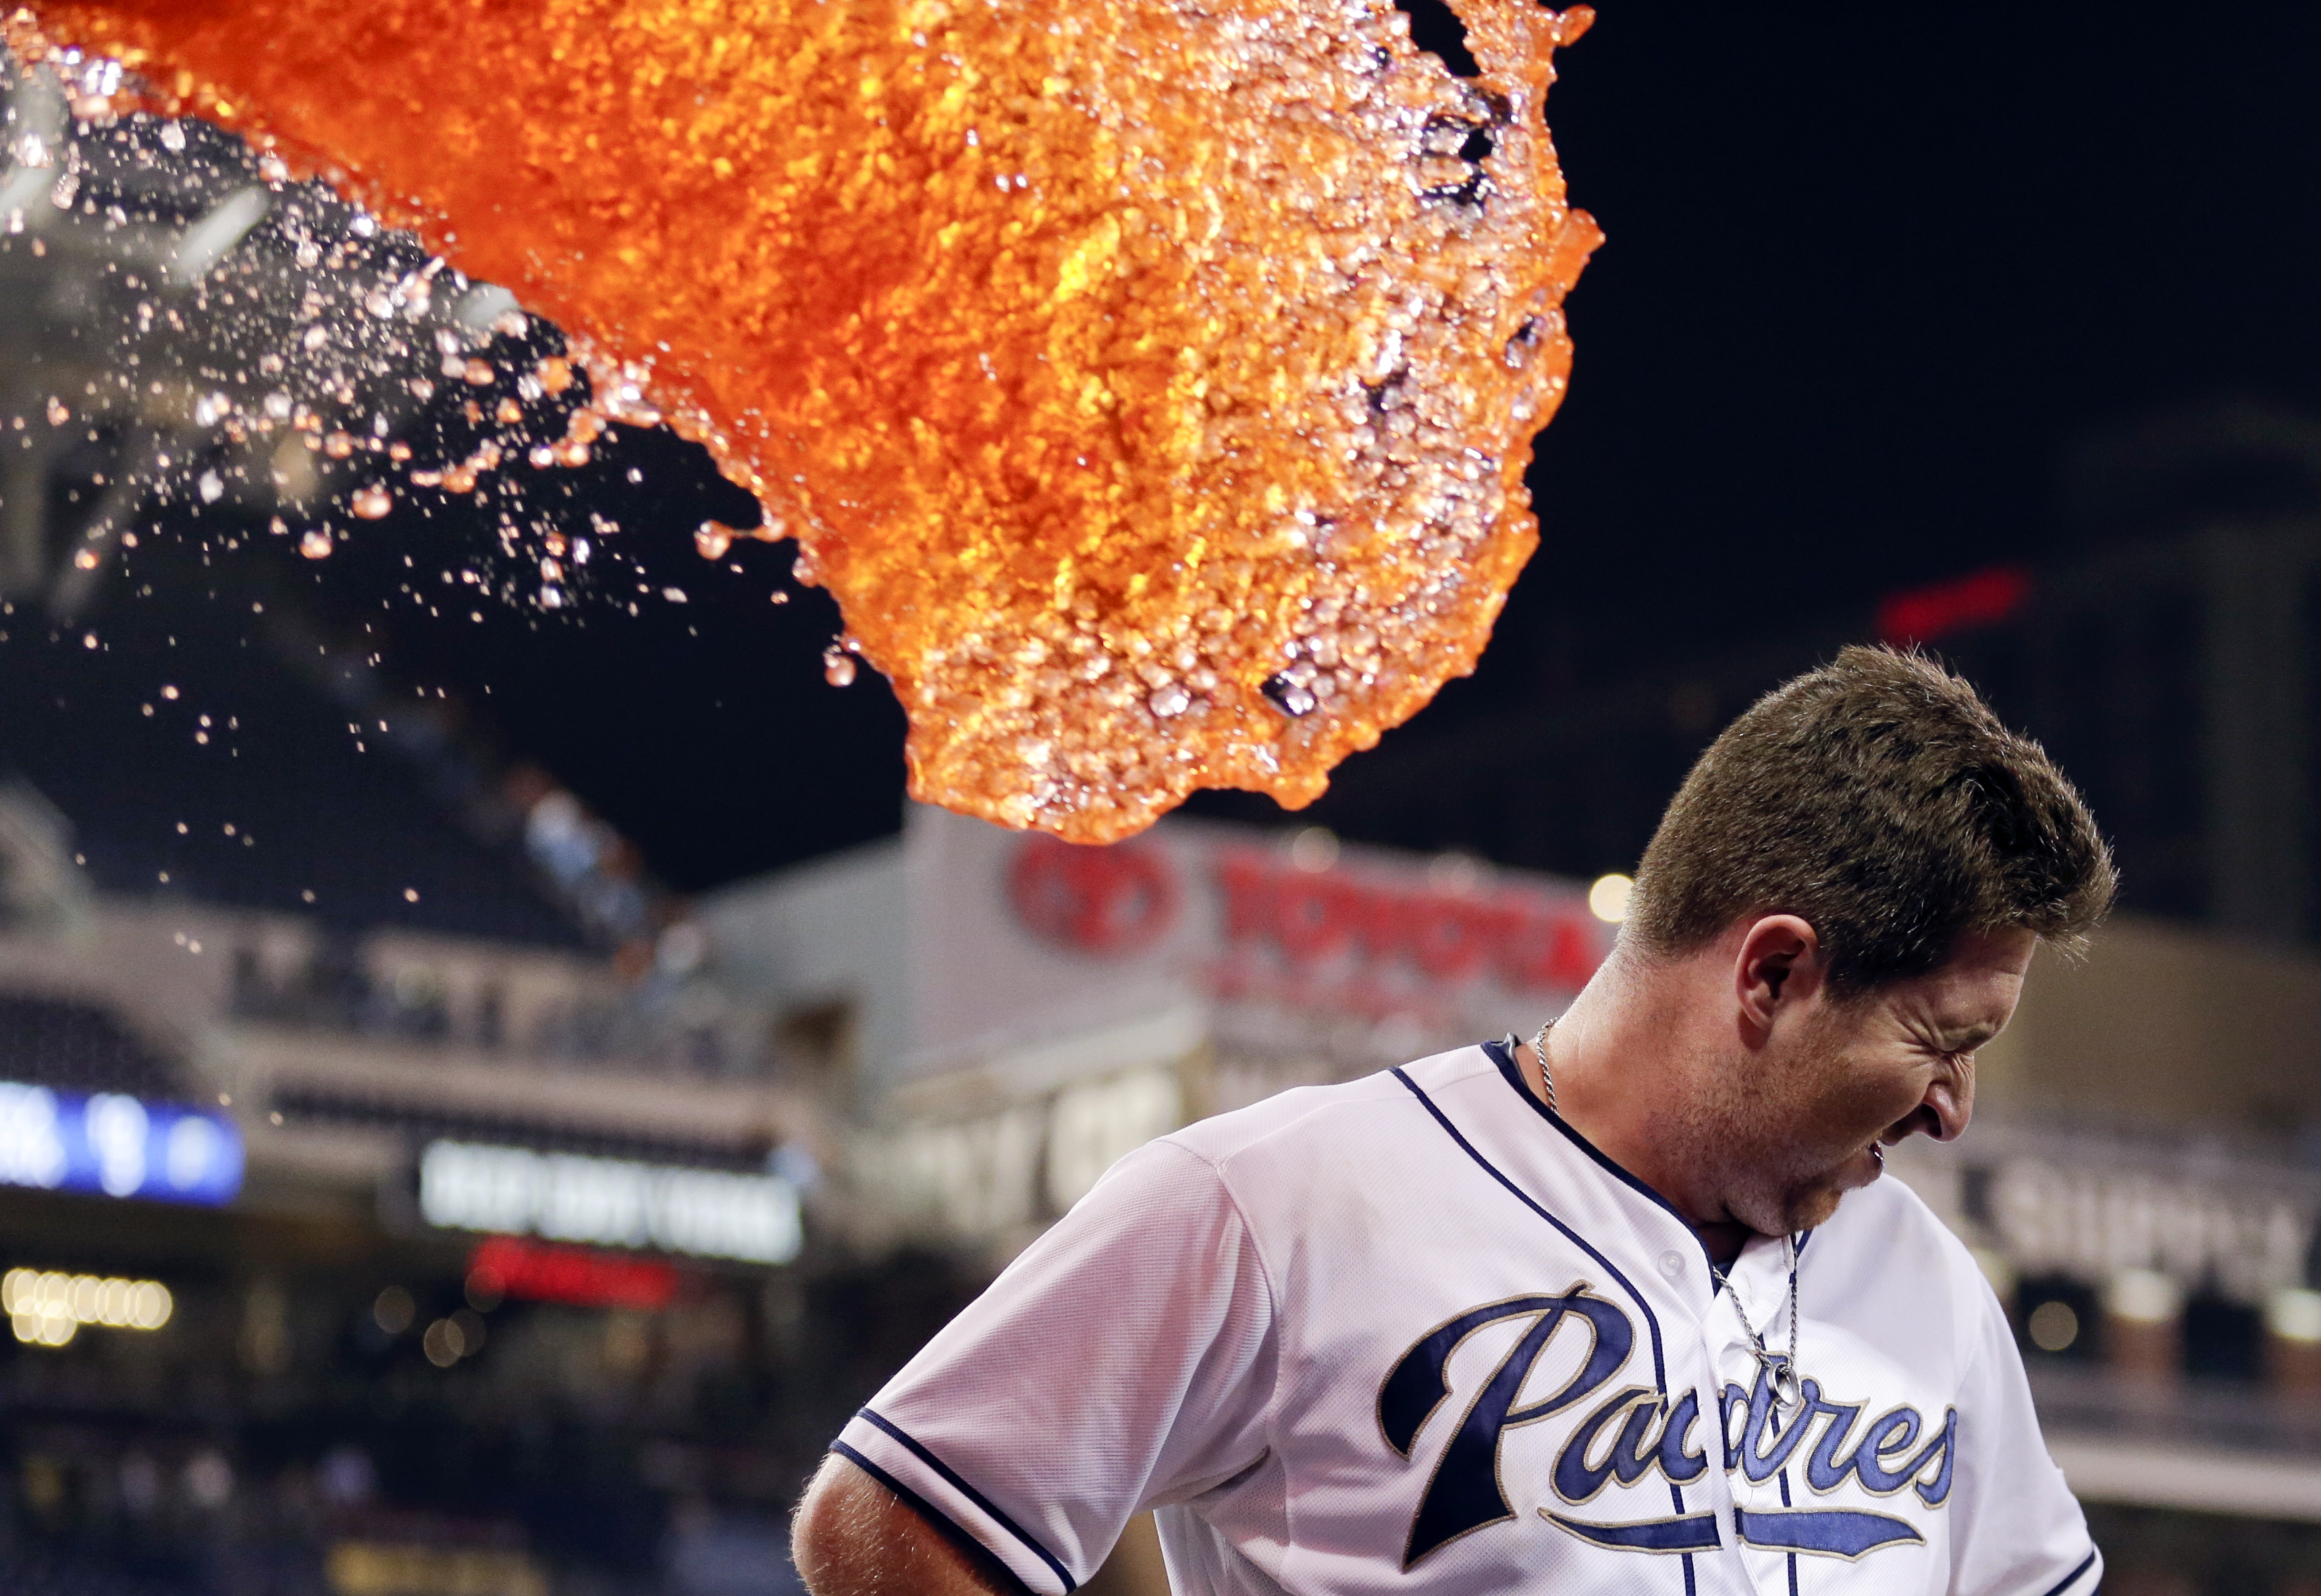 FILE - In this Sept. 23, 2015, file photo, San Diego Padres second baseman Jedd Gyorko braces himself as he is doused in liquid after hitting a walk-off single to defeat the San Francisco Giants in a baseball game in San Diego. The photo was honored by th